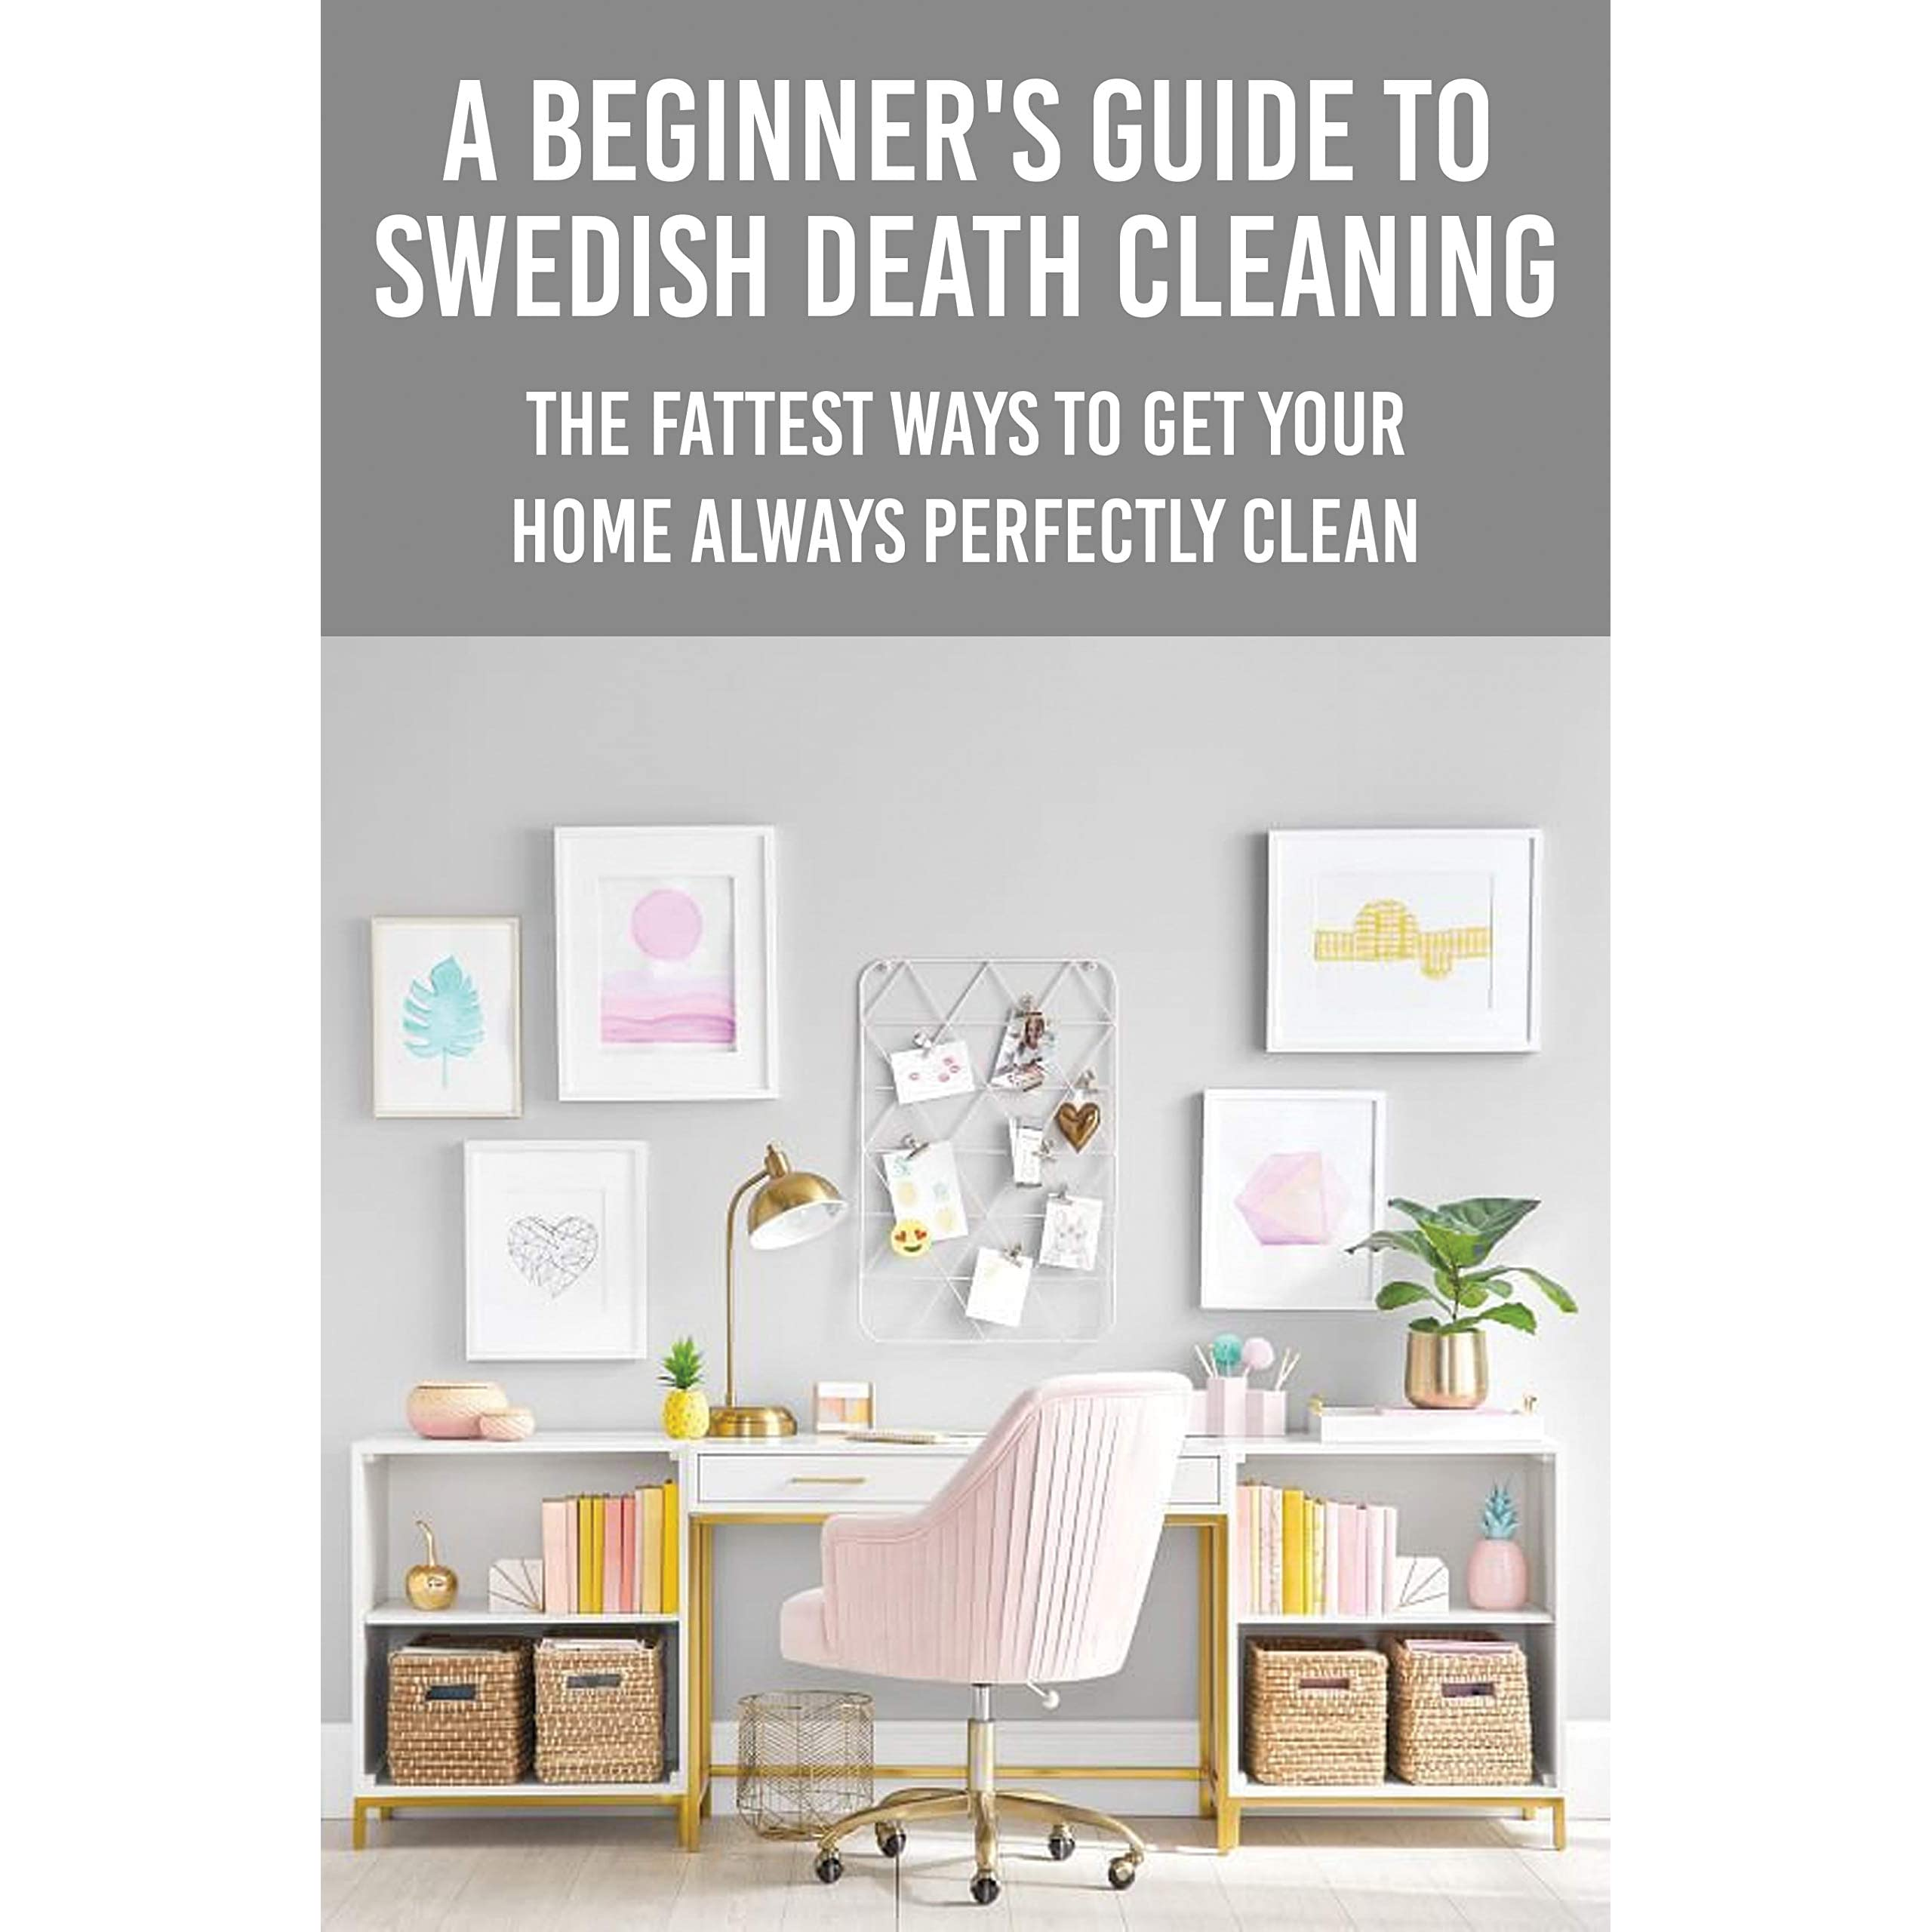 A Beginner's Guide To Swedish Death Cleaning The Fattest Ways To ...